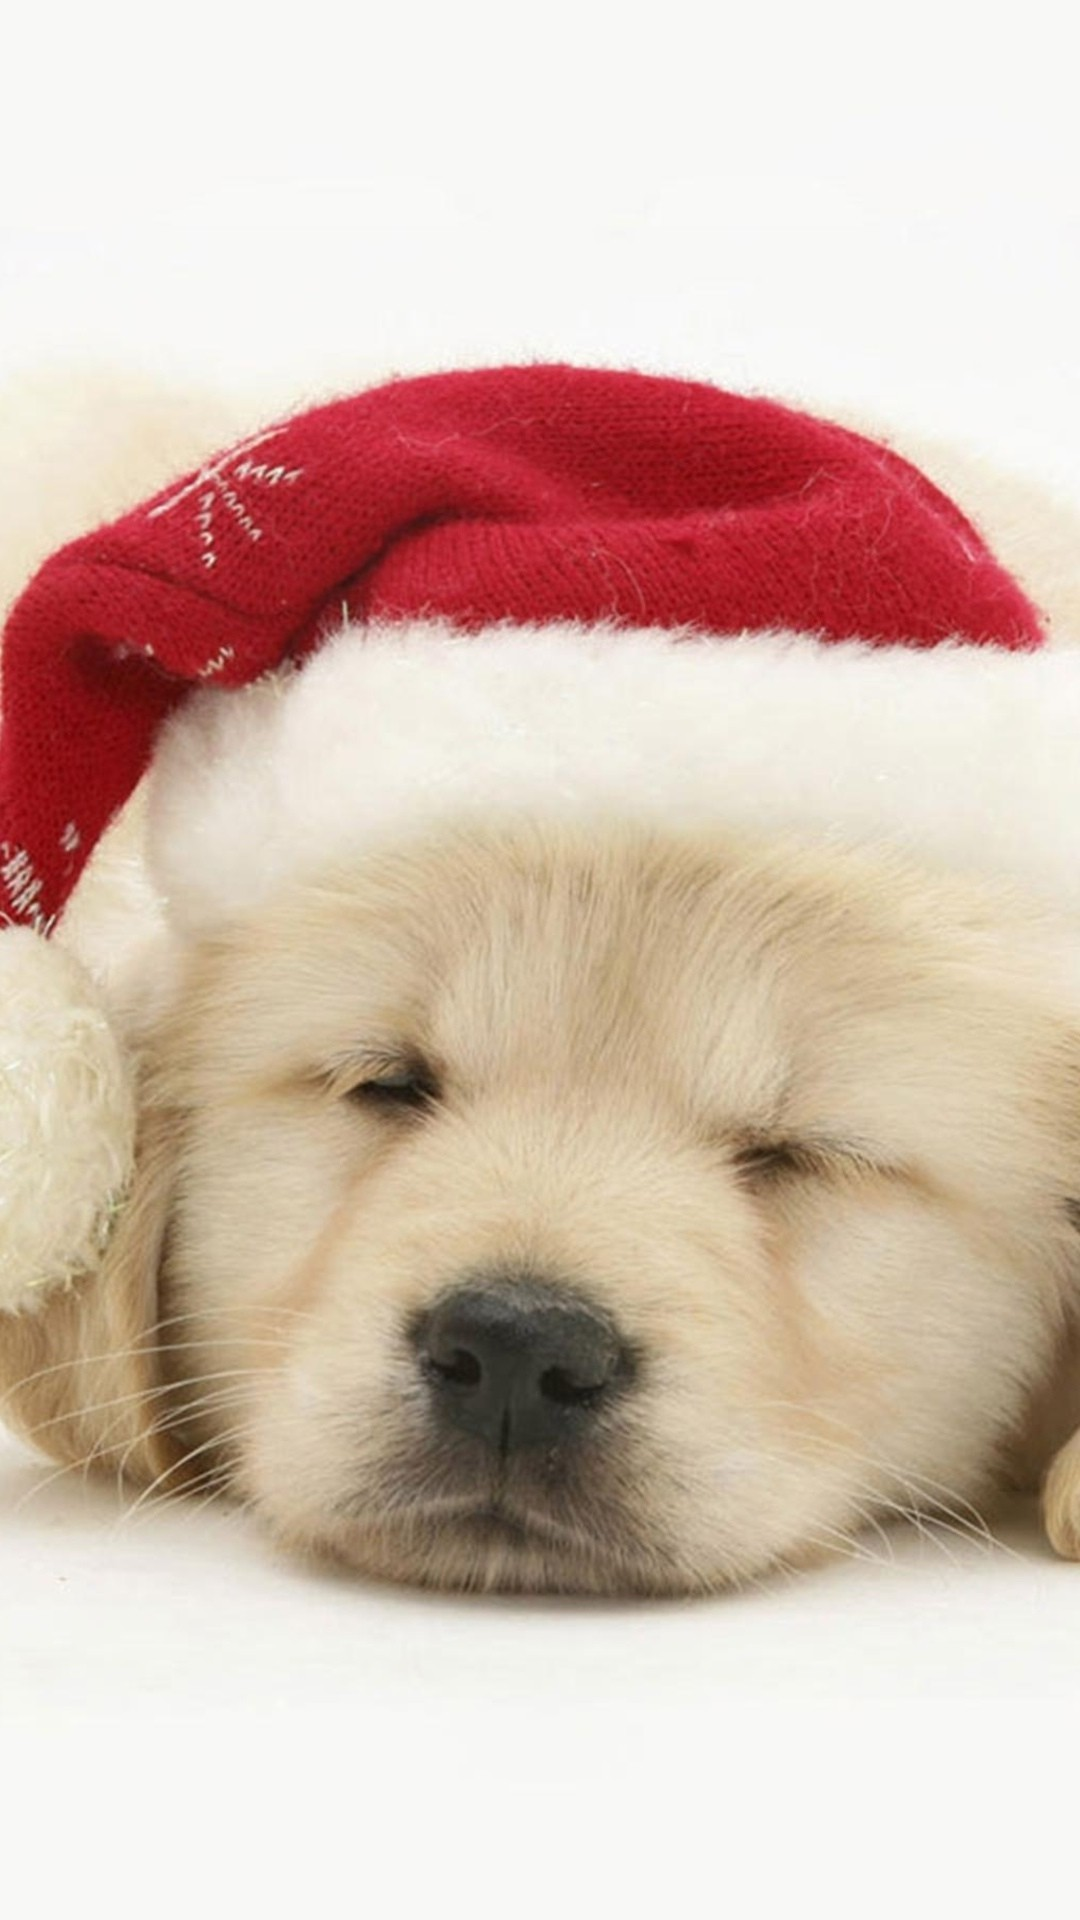 Cute Golden Retriever Puppies Wallpaper 56 Images